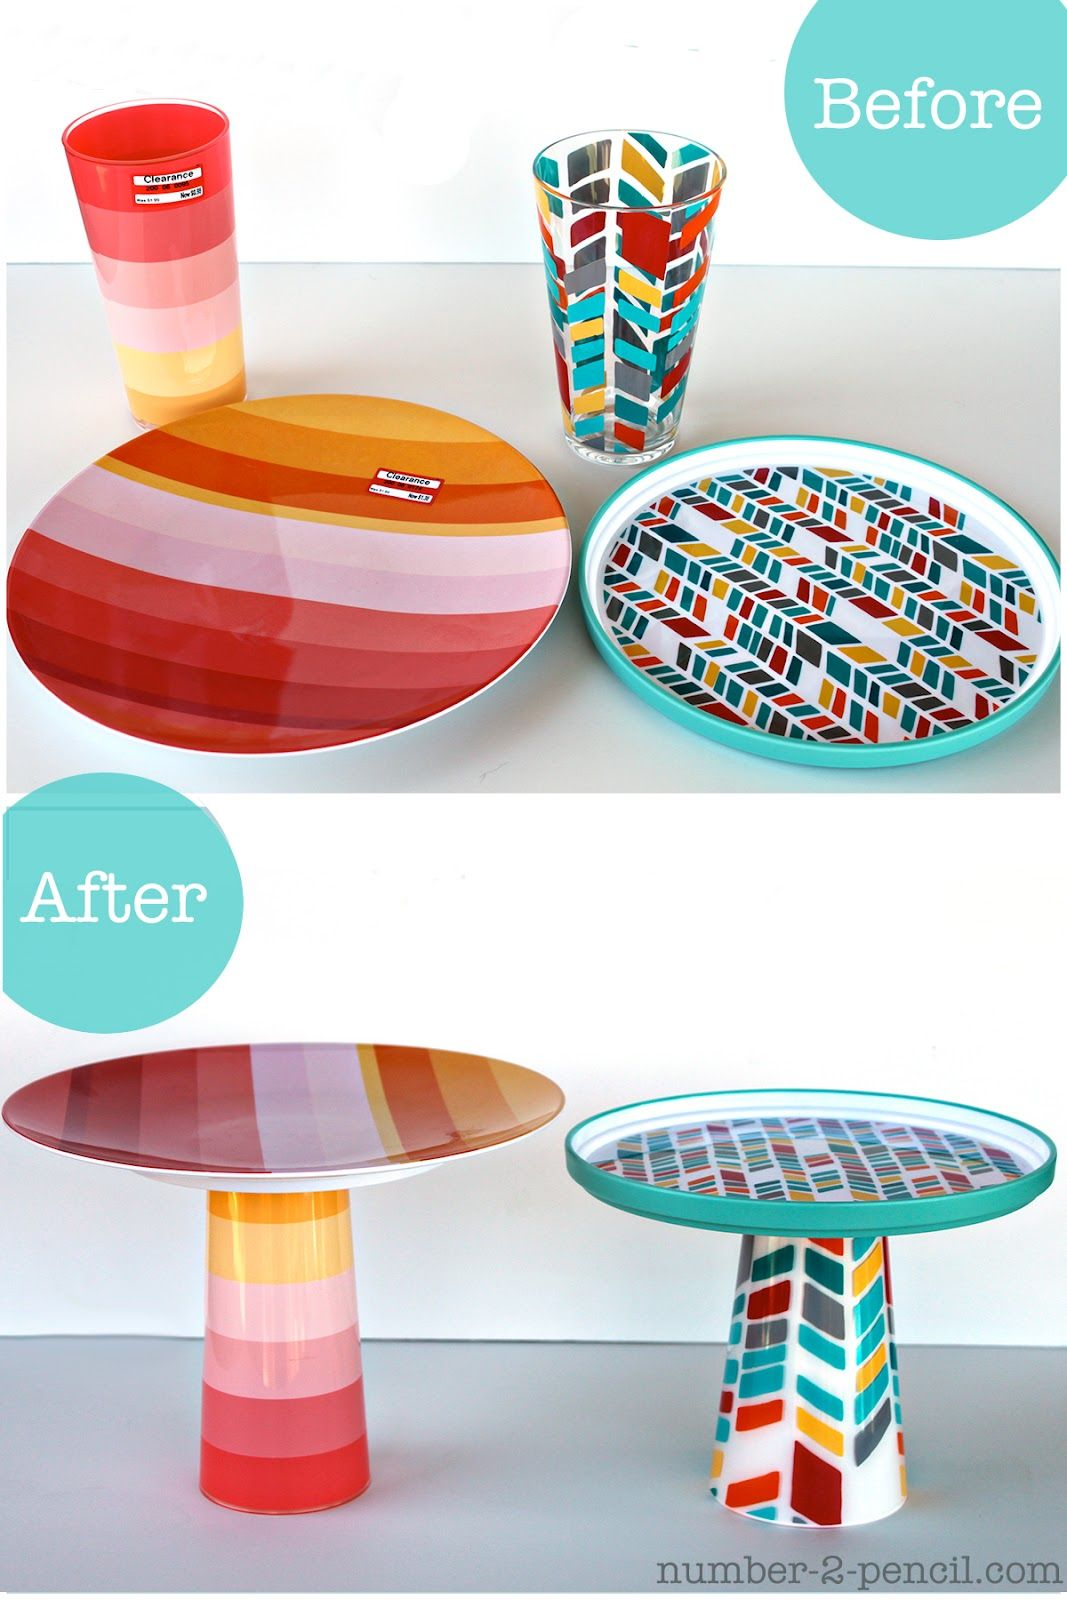 DIY Cake Stands from outdoor plates and cups. I do this all the time! Awesome gifts